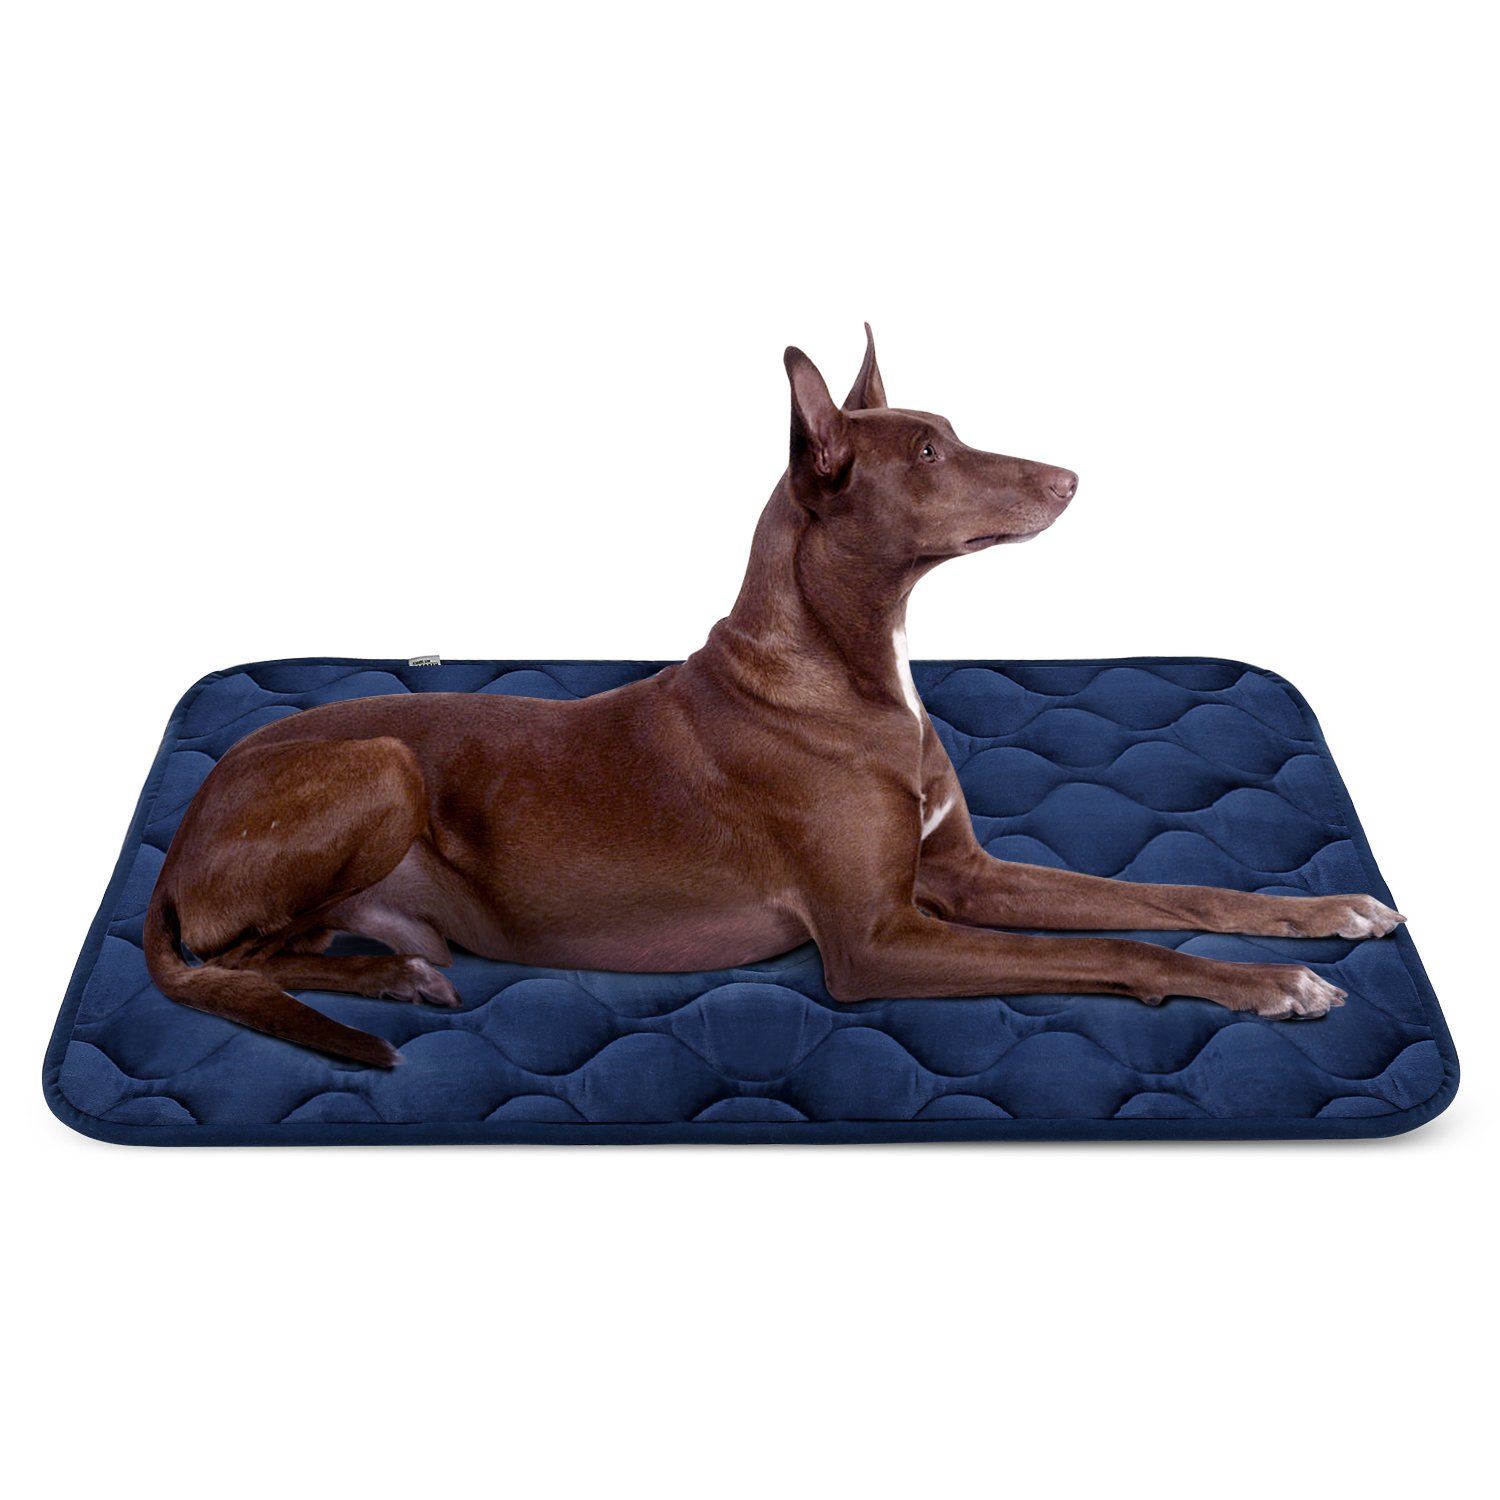 dog chew for your indestructible pet ideas bed and lovely cover supplies proof best